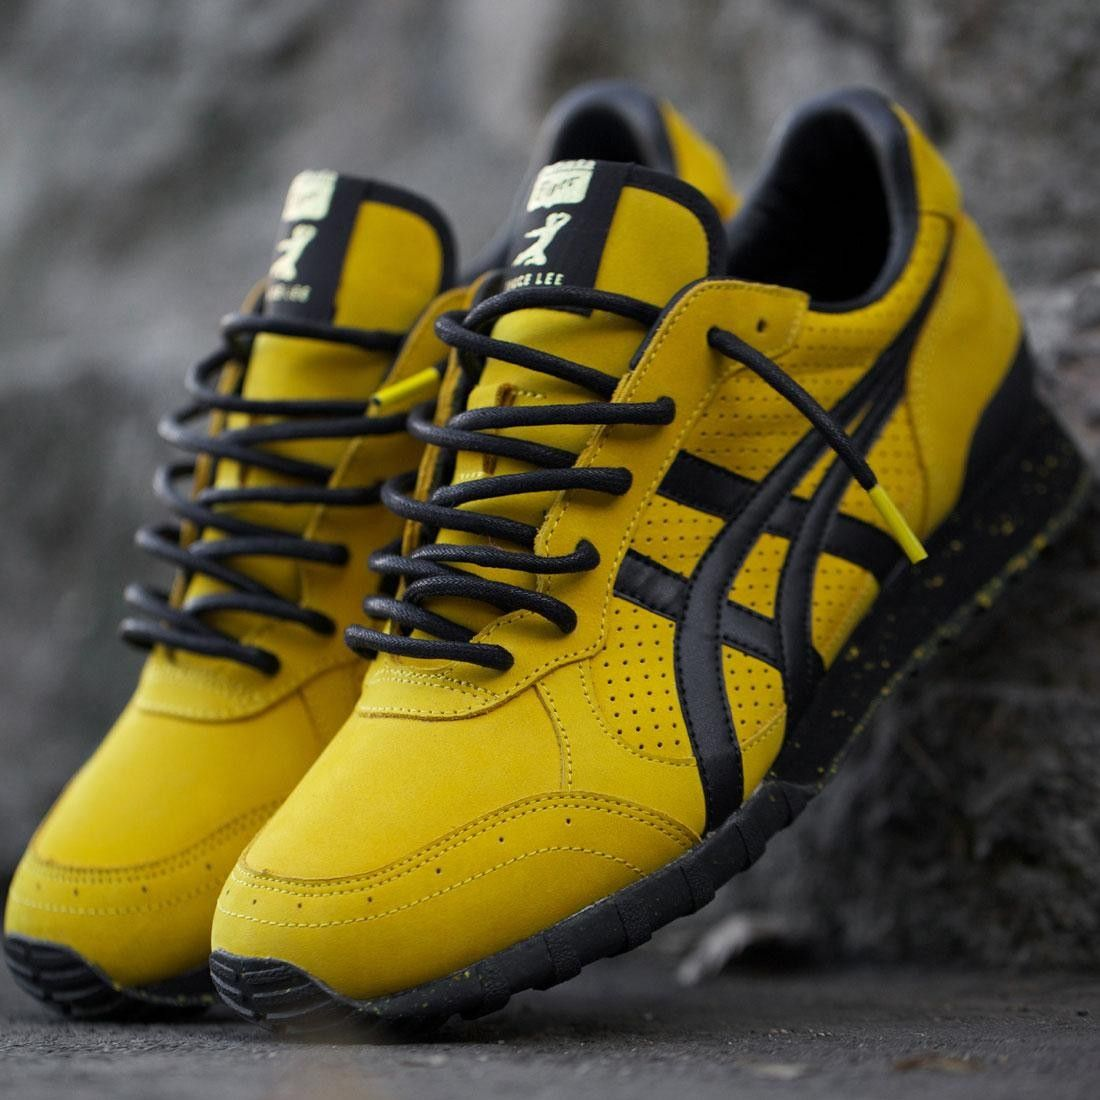 quality design 3b2c2 02ba4 BAIT x Bruce Lee x Onitsuka Tiger Men Colorado Eighty Five ...